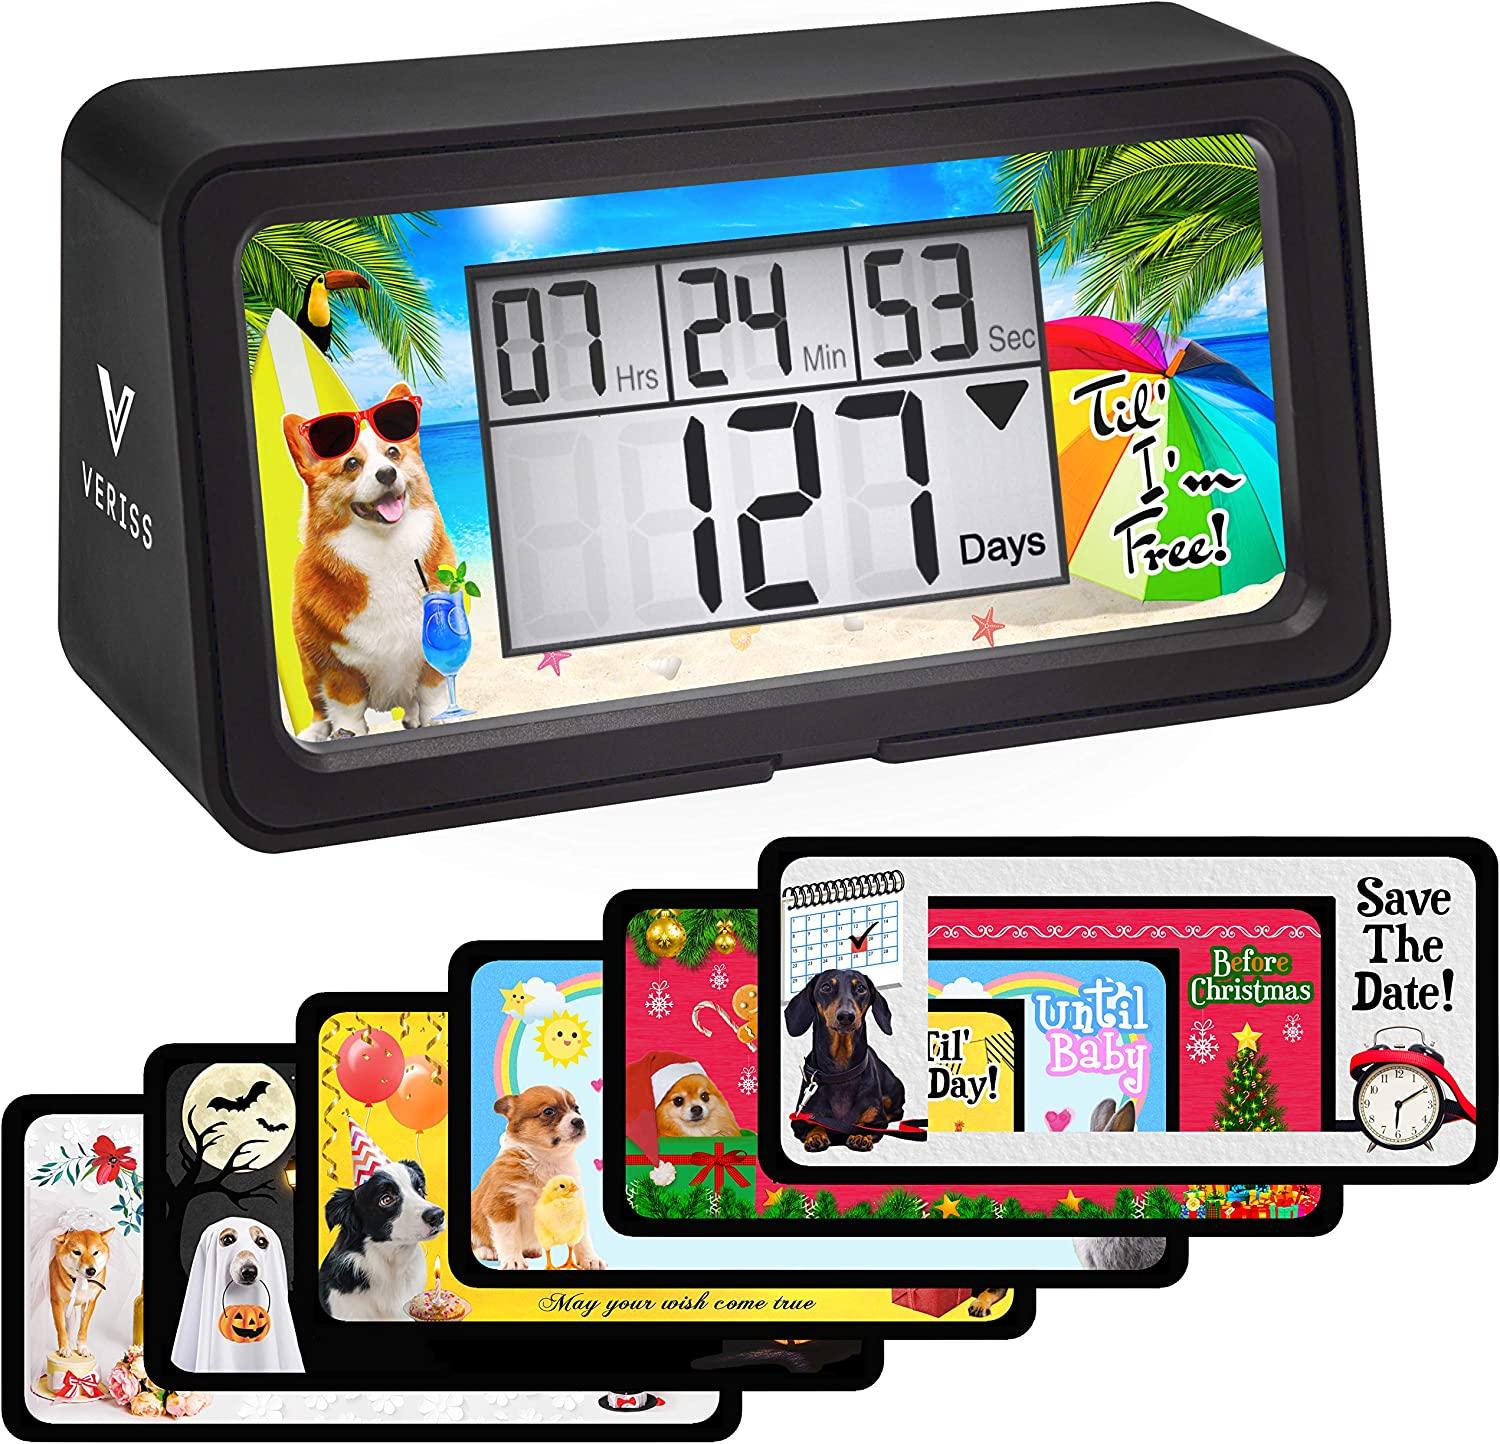 VERISS Digital 9999 Days Countdown Clock Timer with Backlight - Count Down Your Retirement, Wedding, Christmas, Vacation and All Calendar Event Dates in Your Life - Dog Collection (Black - 8 Frames)